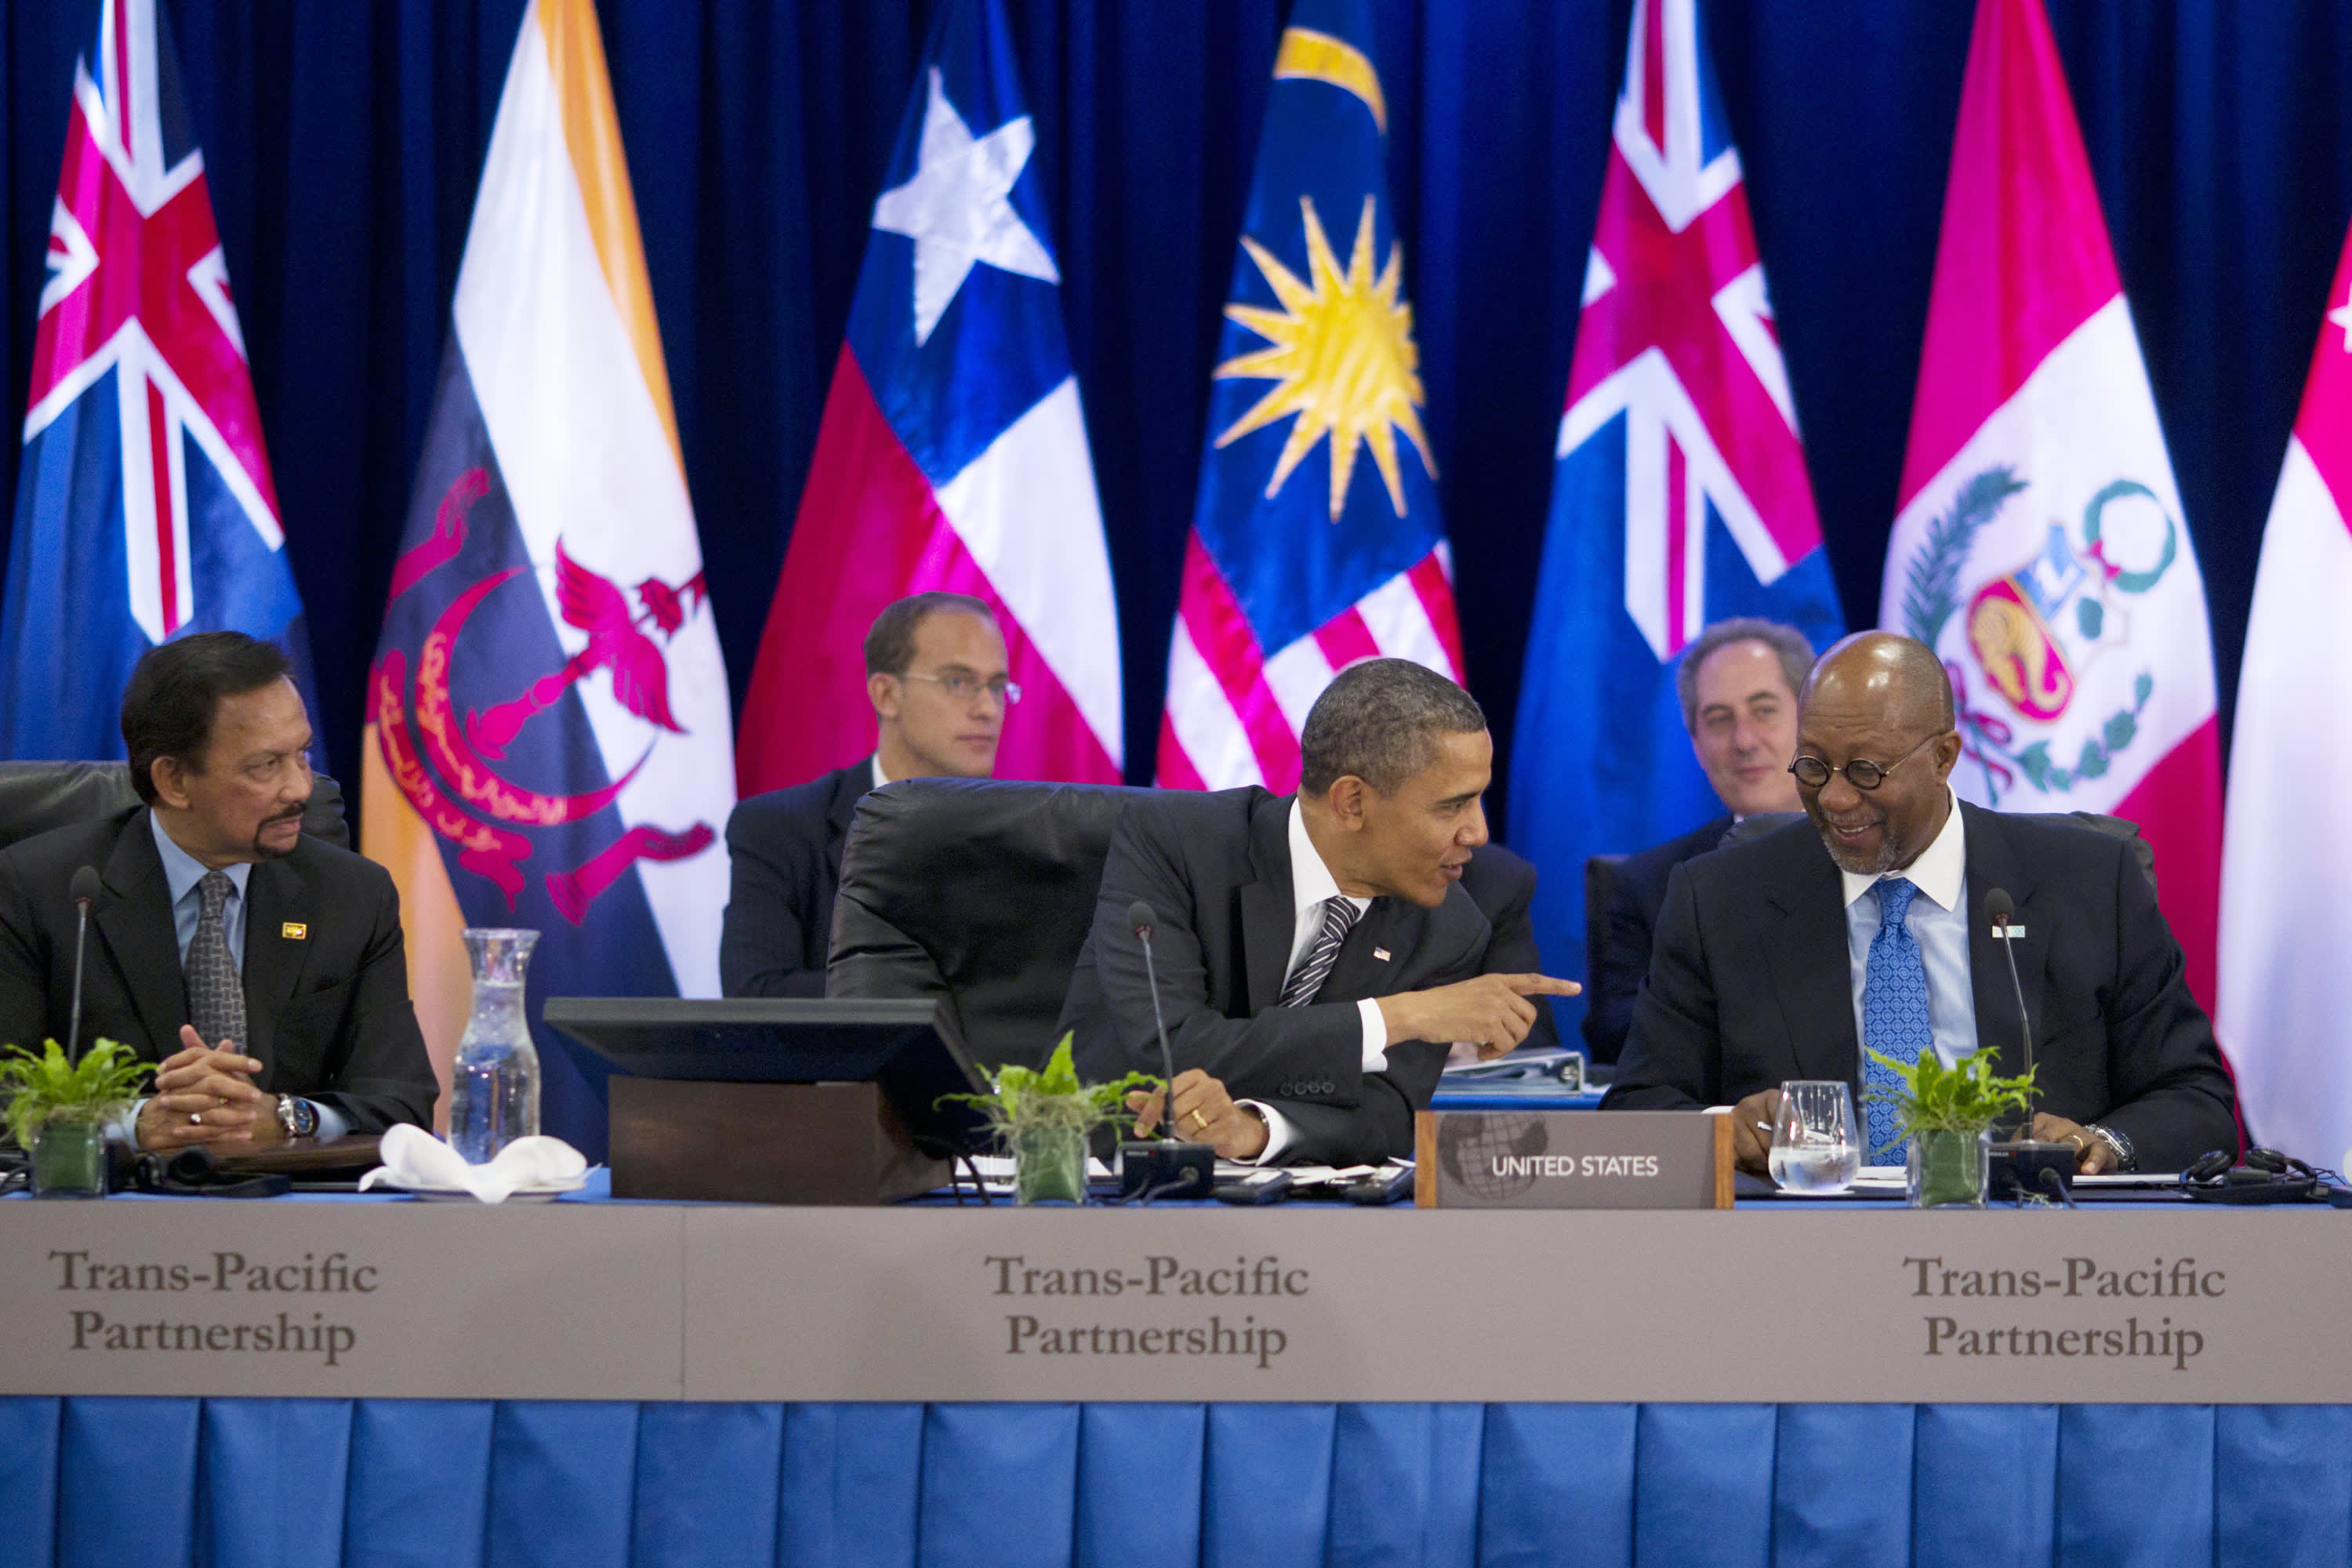 Trans Pacific Partnership Gop Candidates Split On Deal